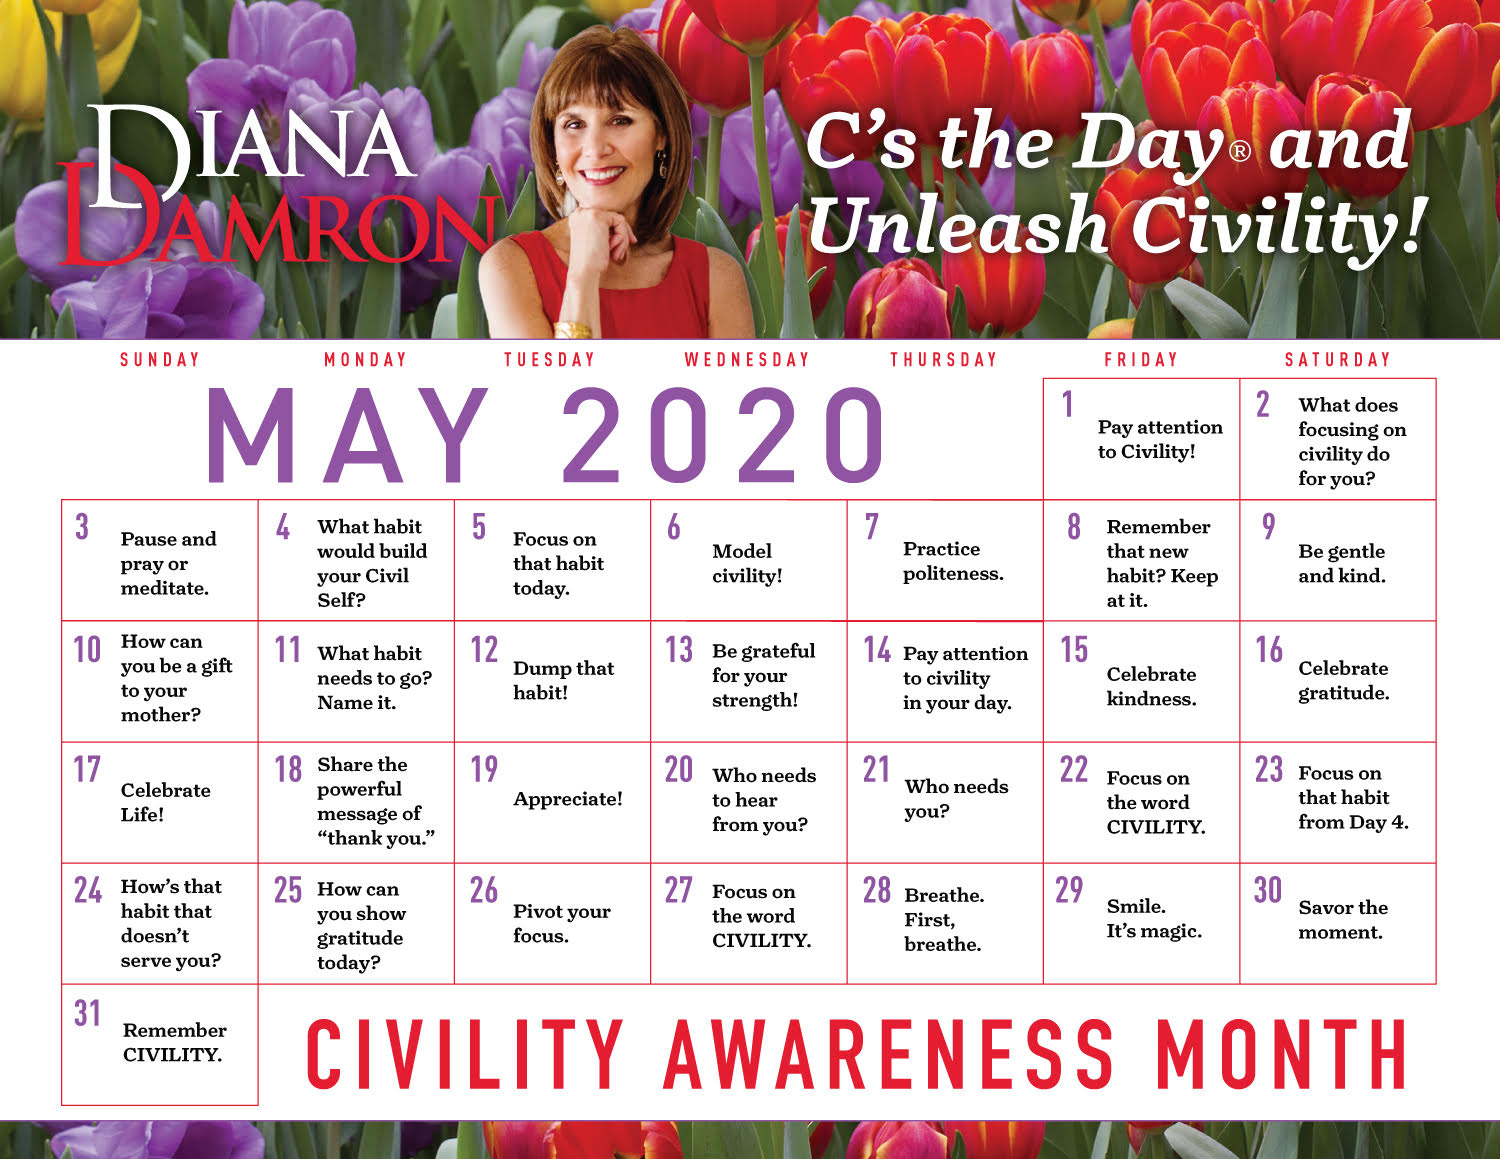 May 2020 Calendar by Diana Damron